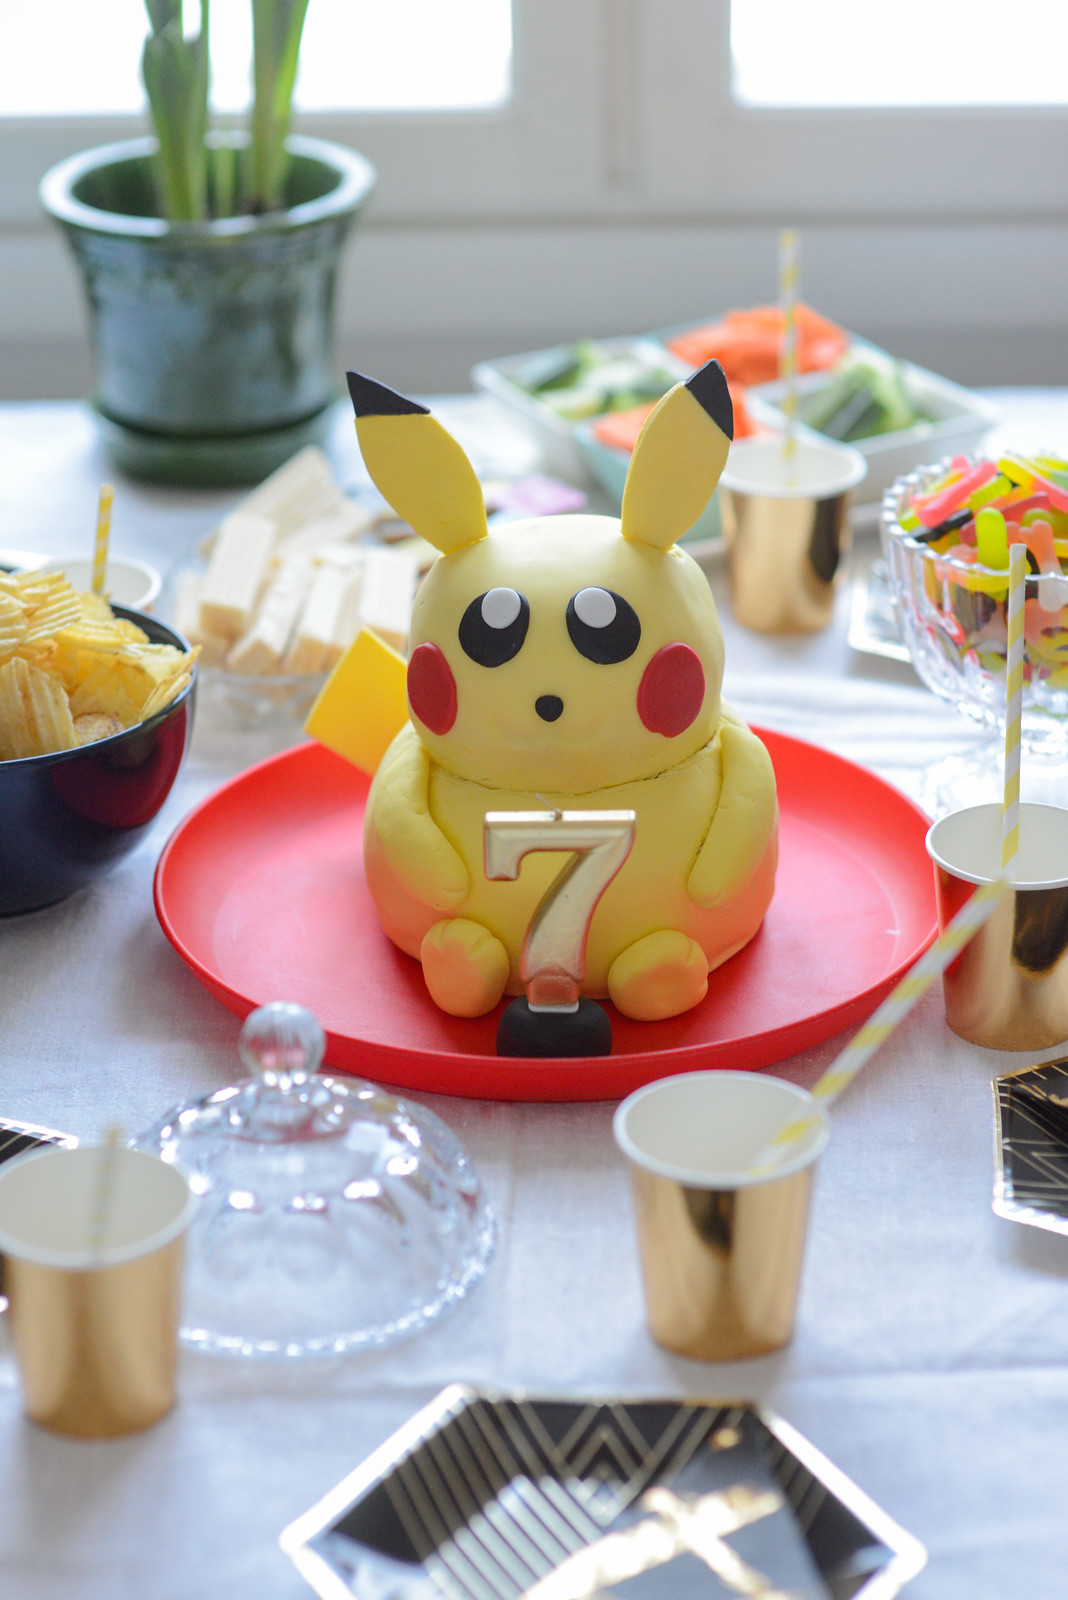 Pokemon birthday party with Pikachu cake